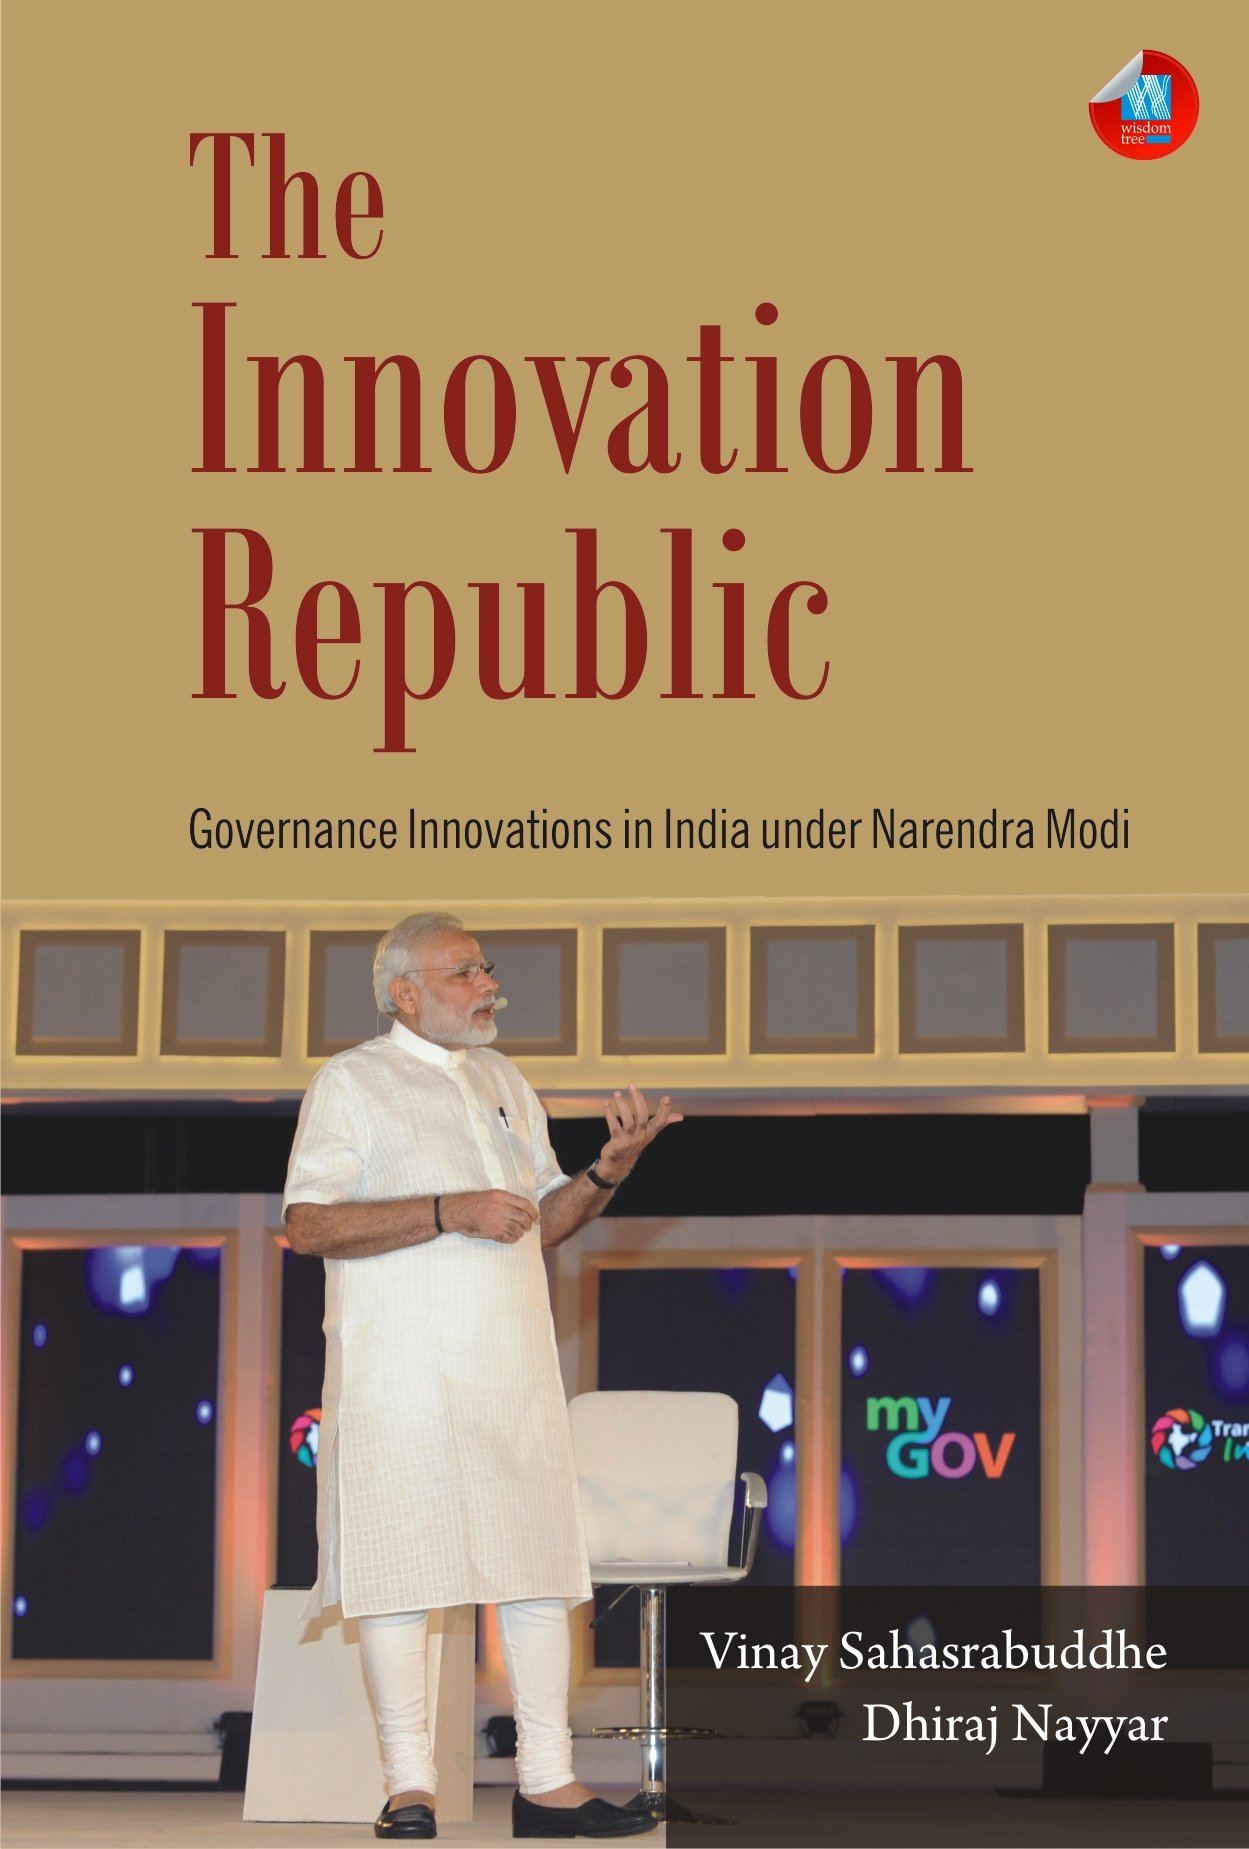 Buy The Innovation Republic: Governance Innovations in India